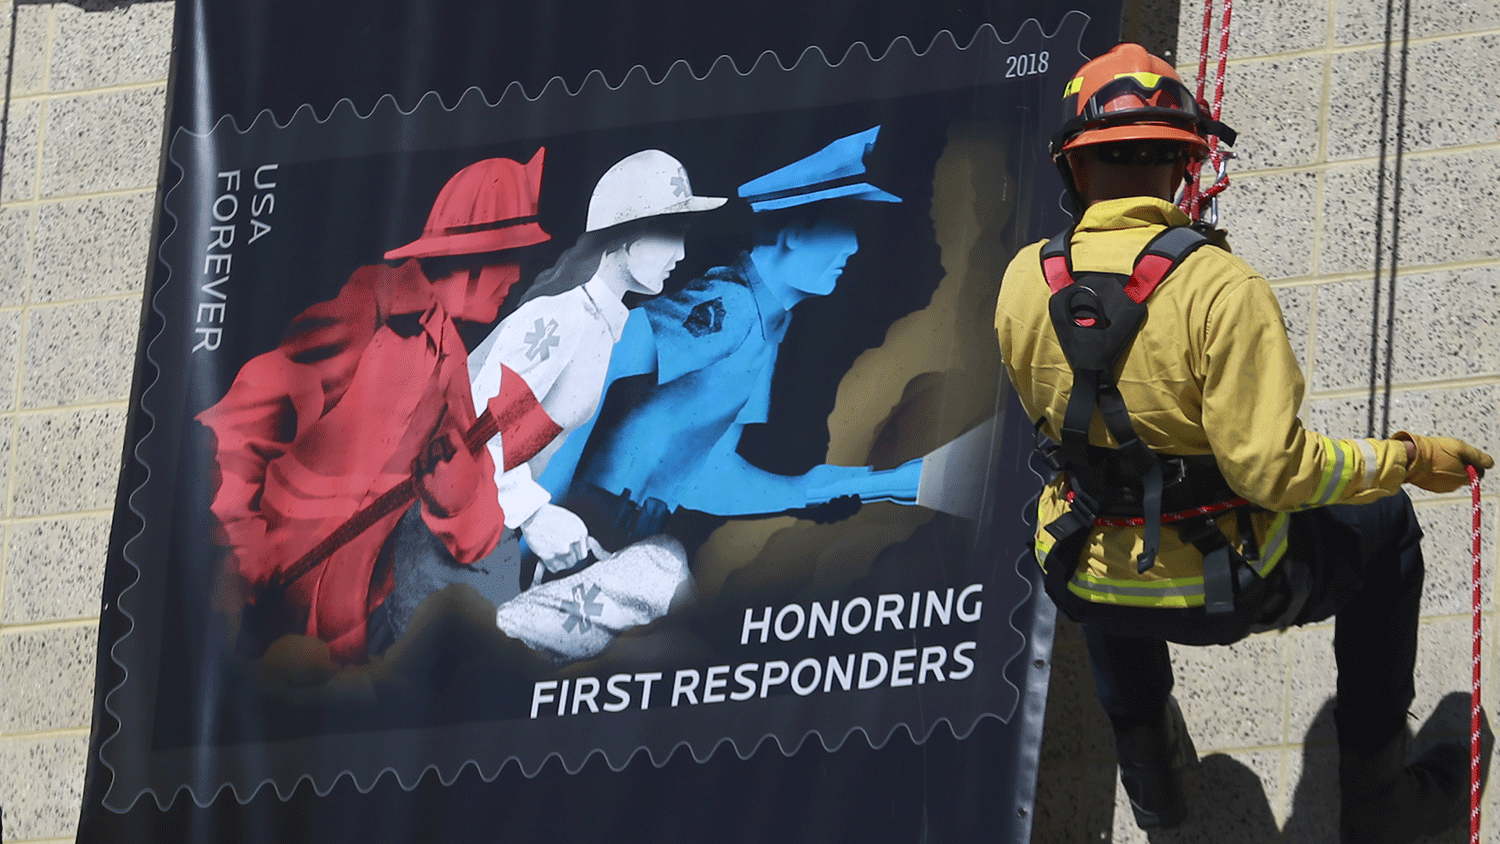 First responders stamp unveiling